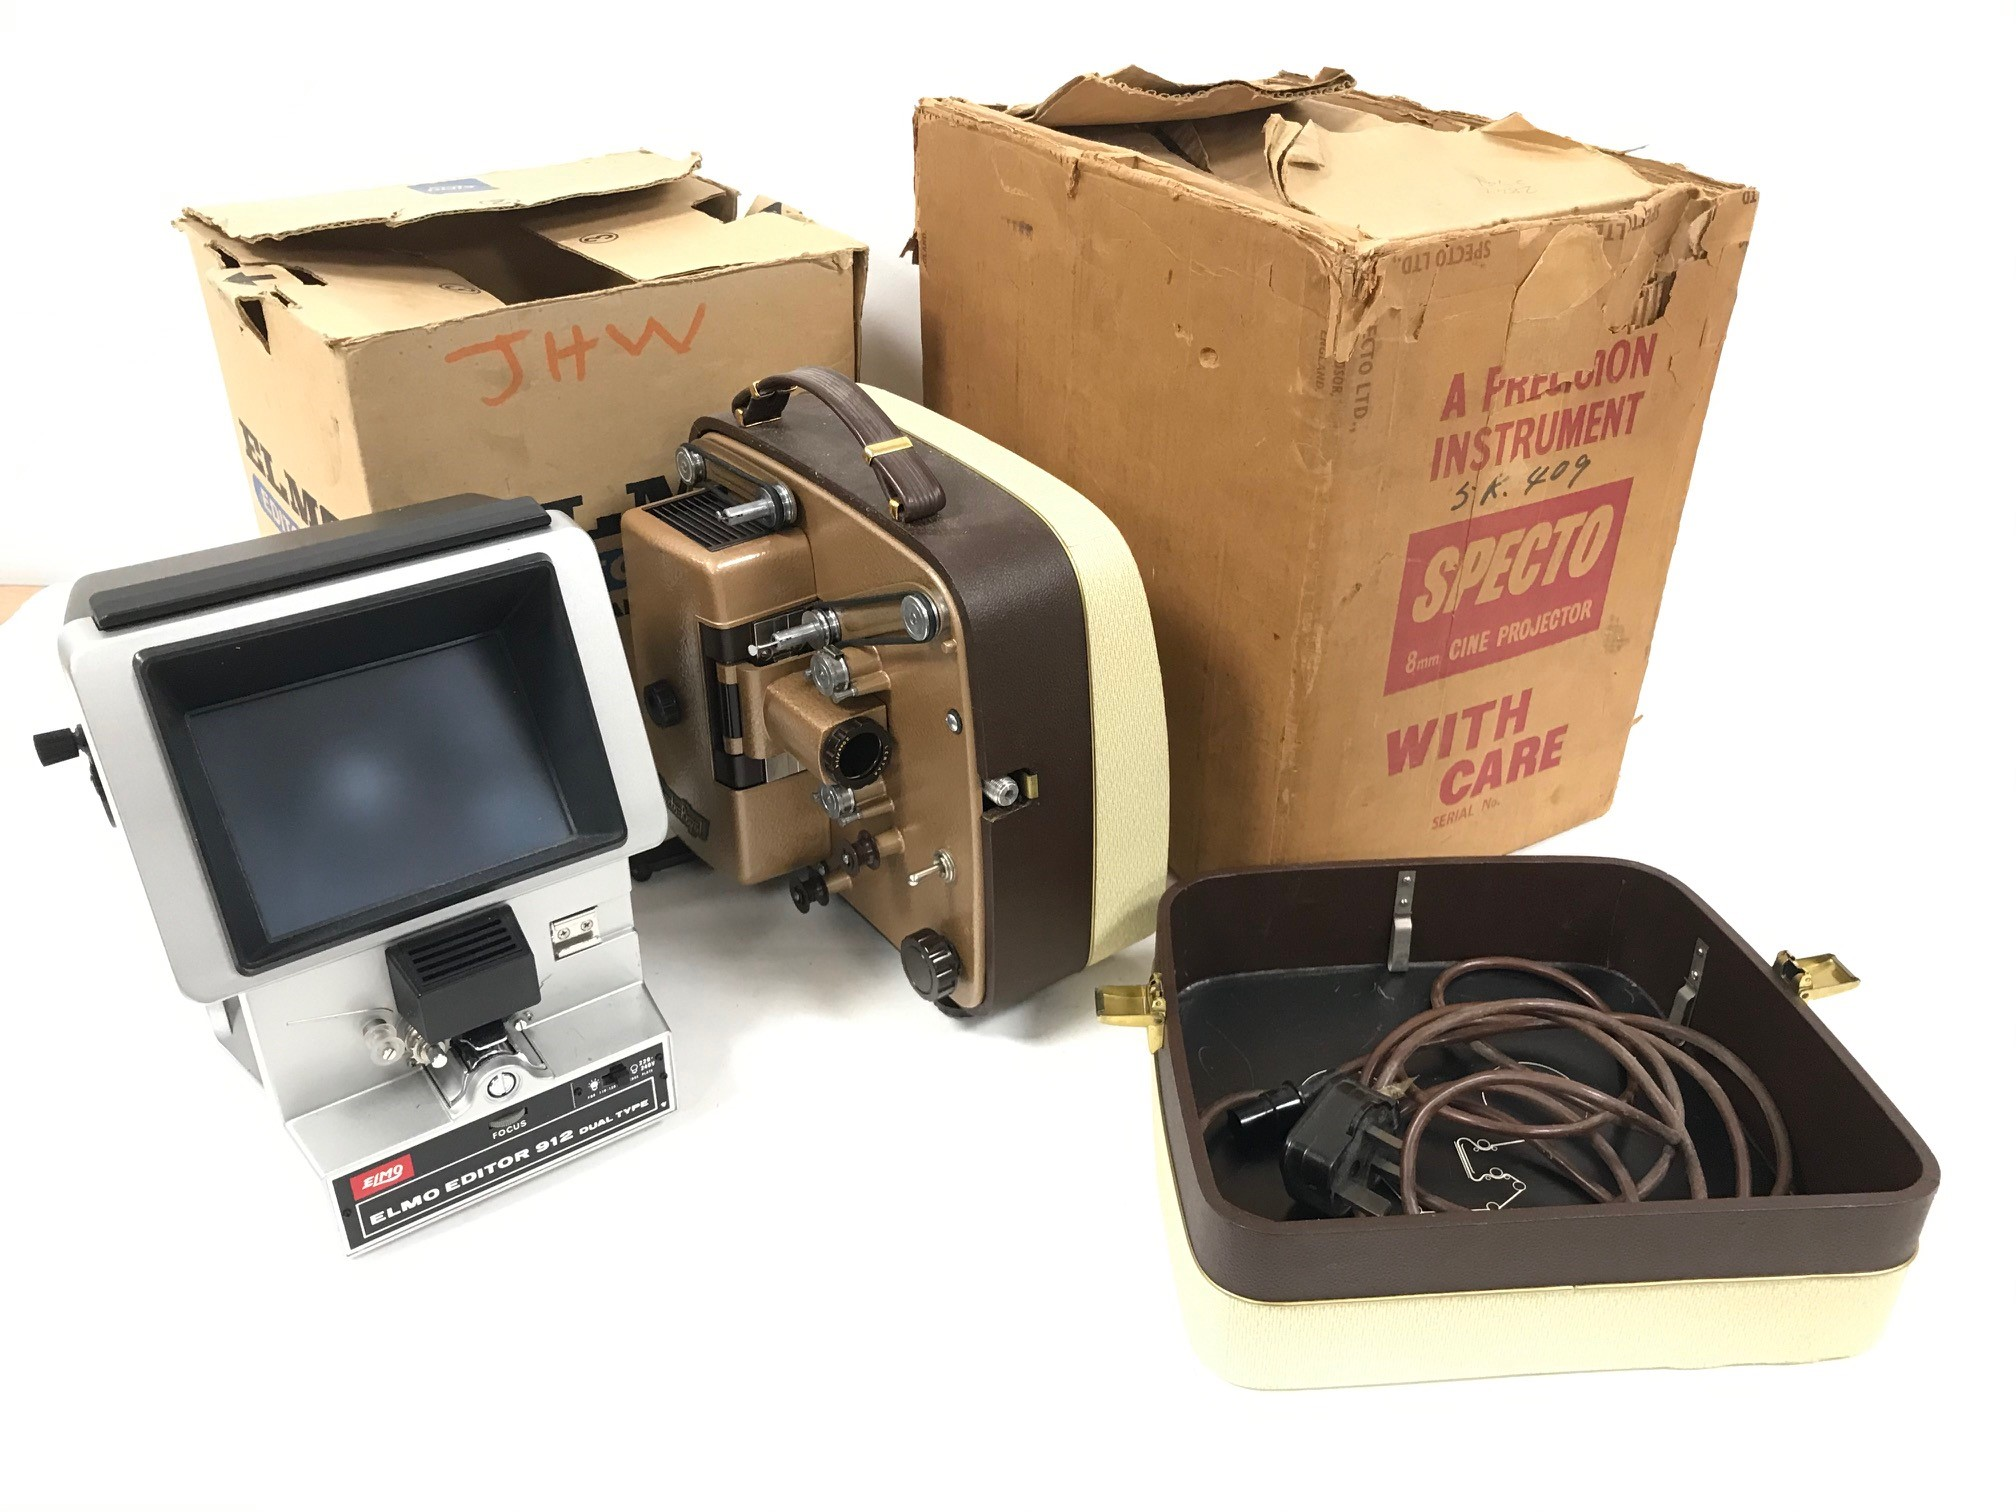 A vintage Specto 8mm cine projector, together with an Elmo Editor 912 Dual Type, both with boxes but